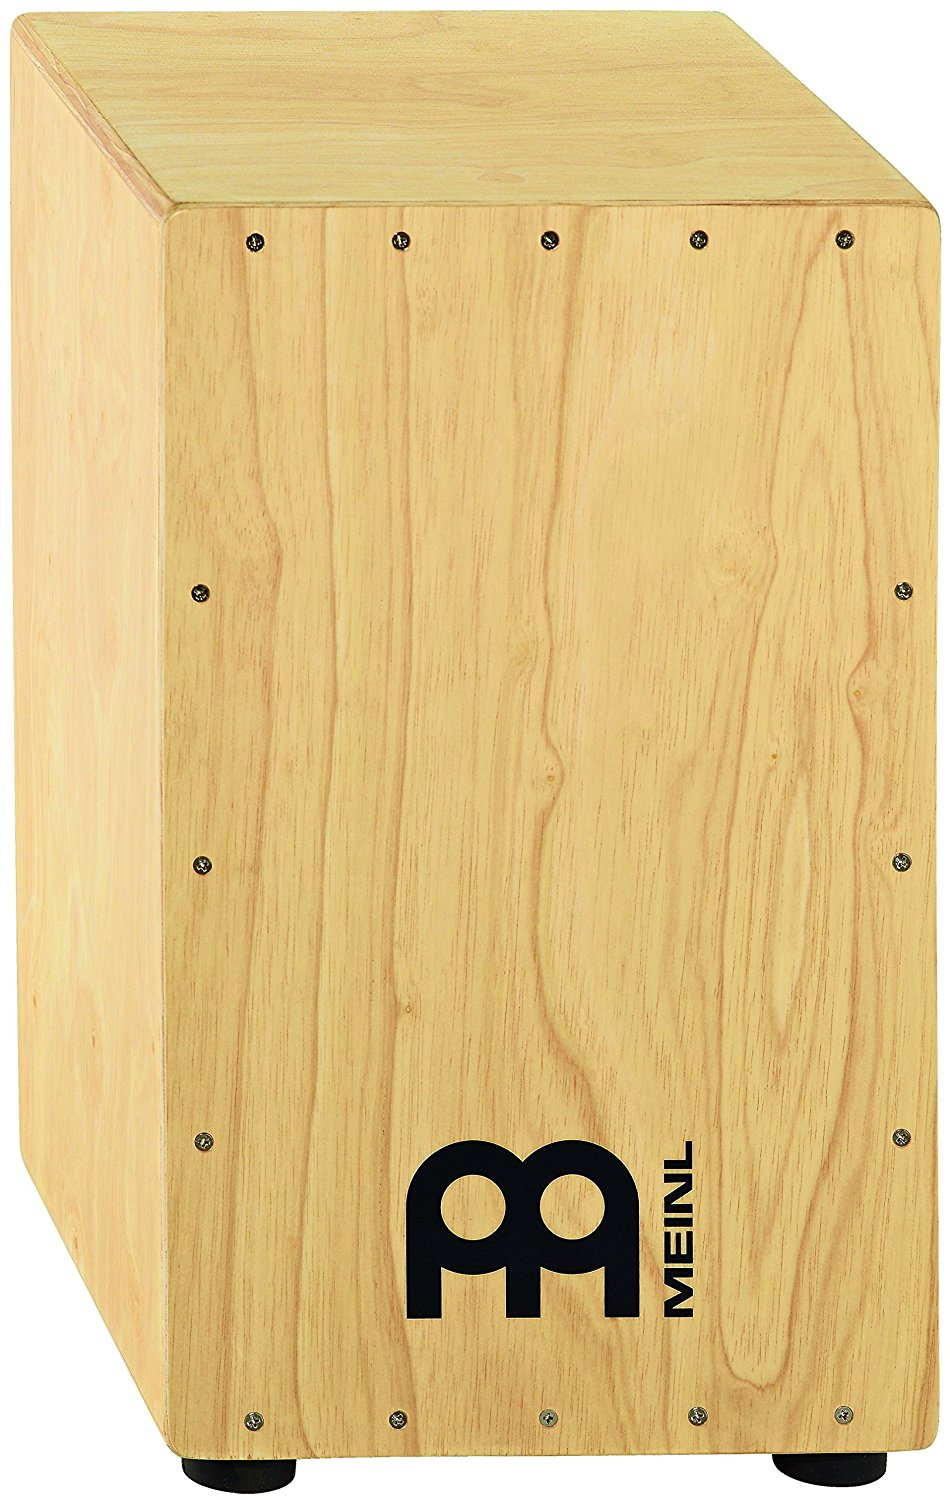 Meinl Percussion Headliner Series Rubber Wood String Cajon